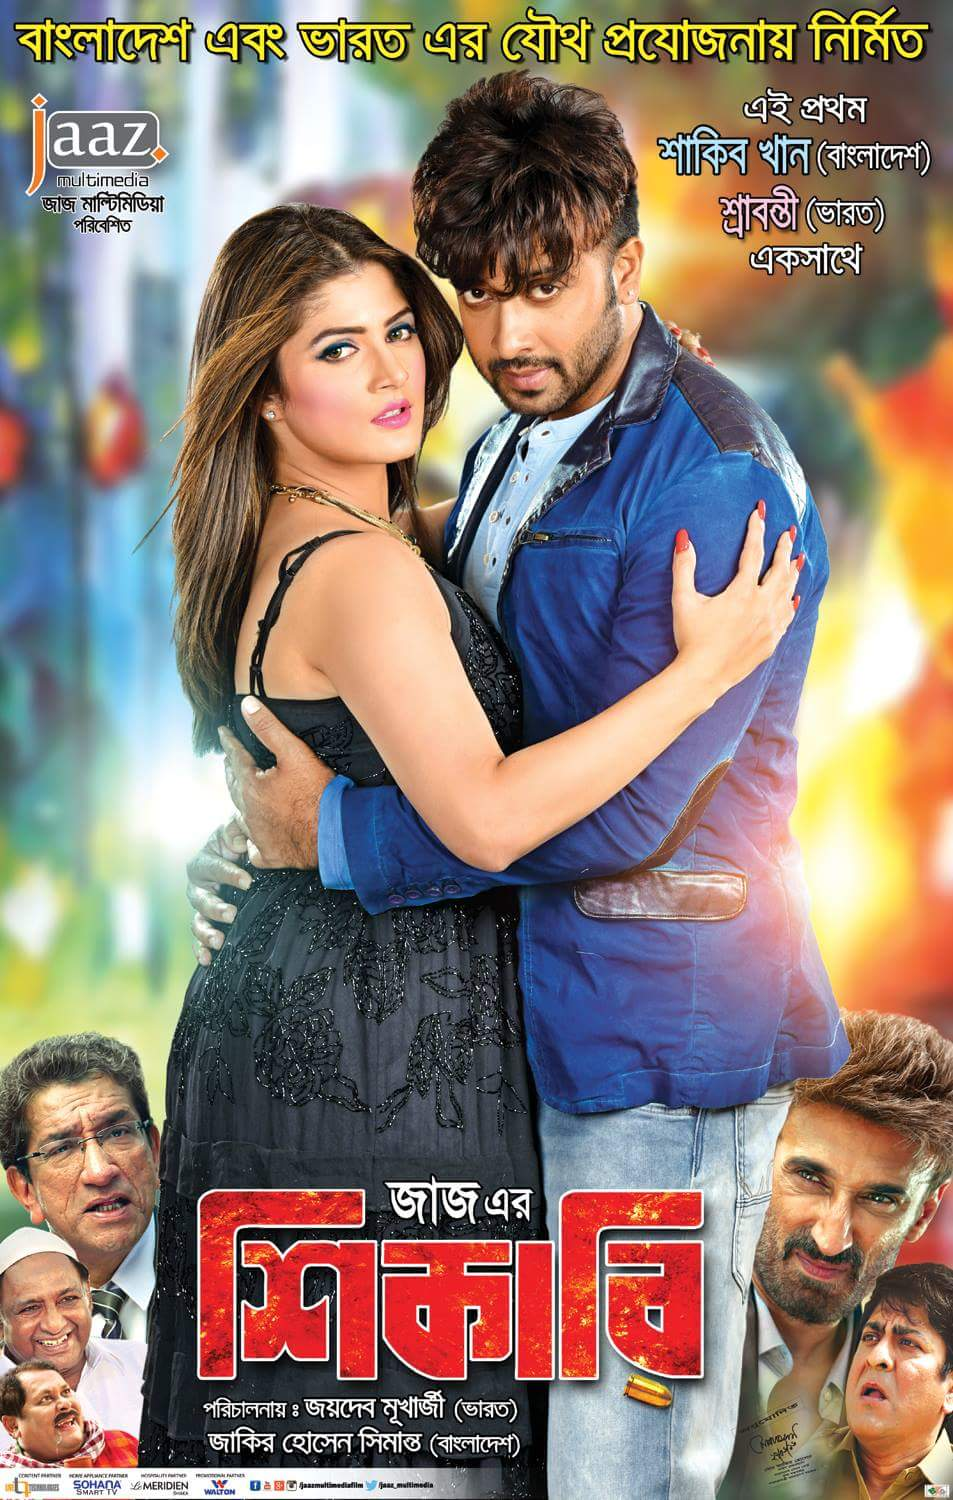 Shikari bangla full movie watch online free